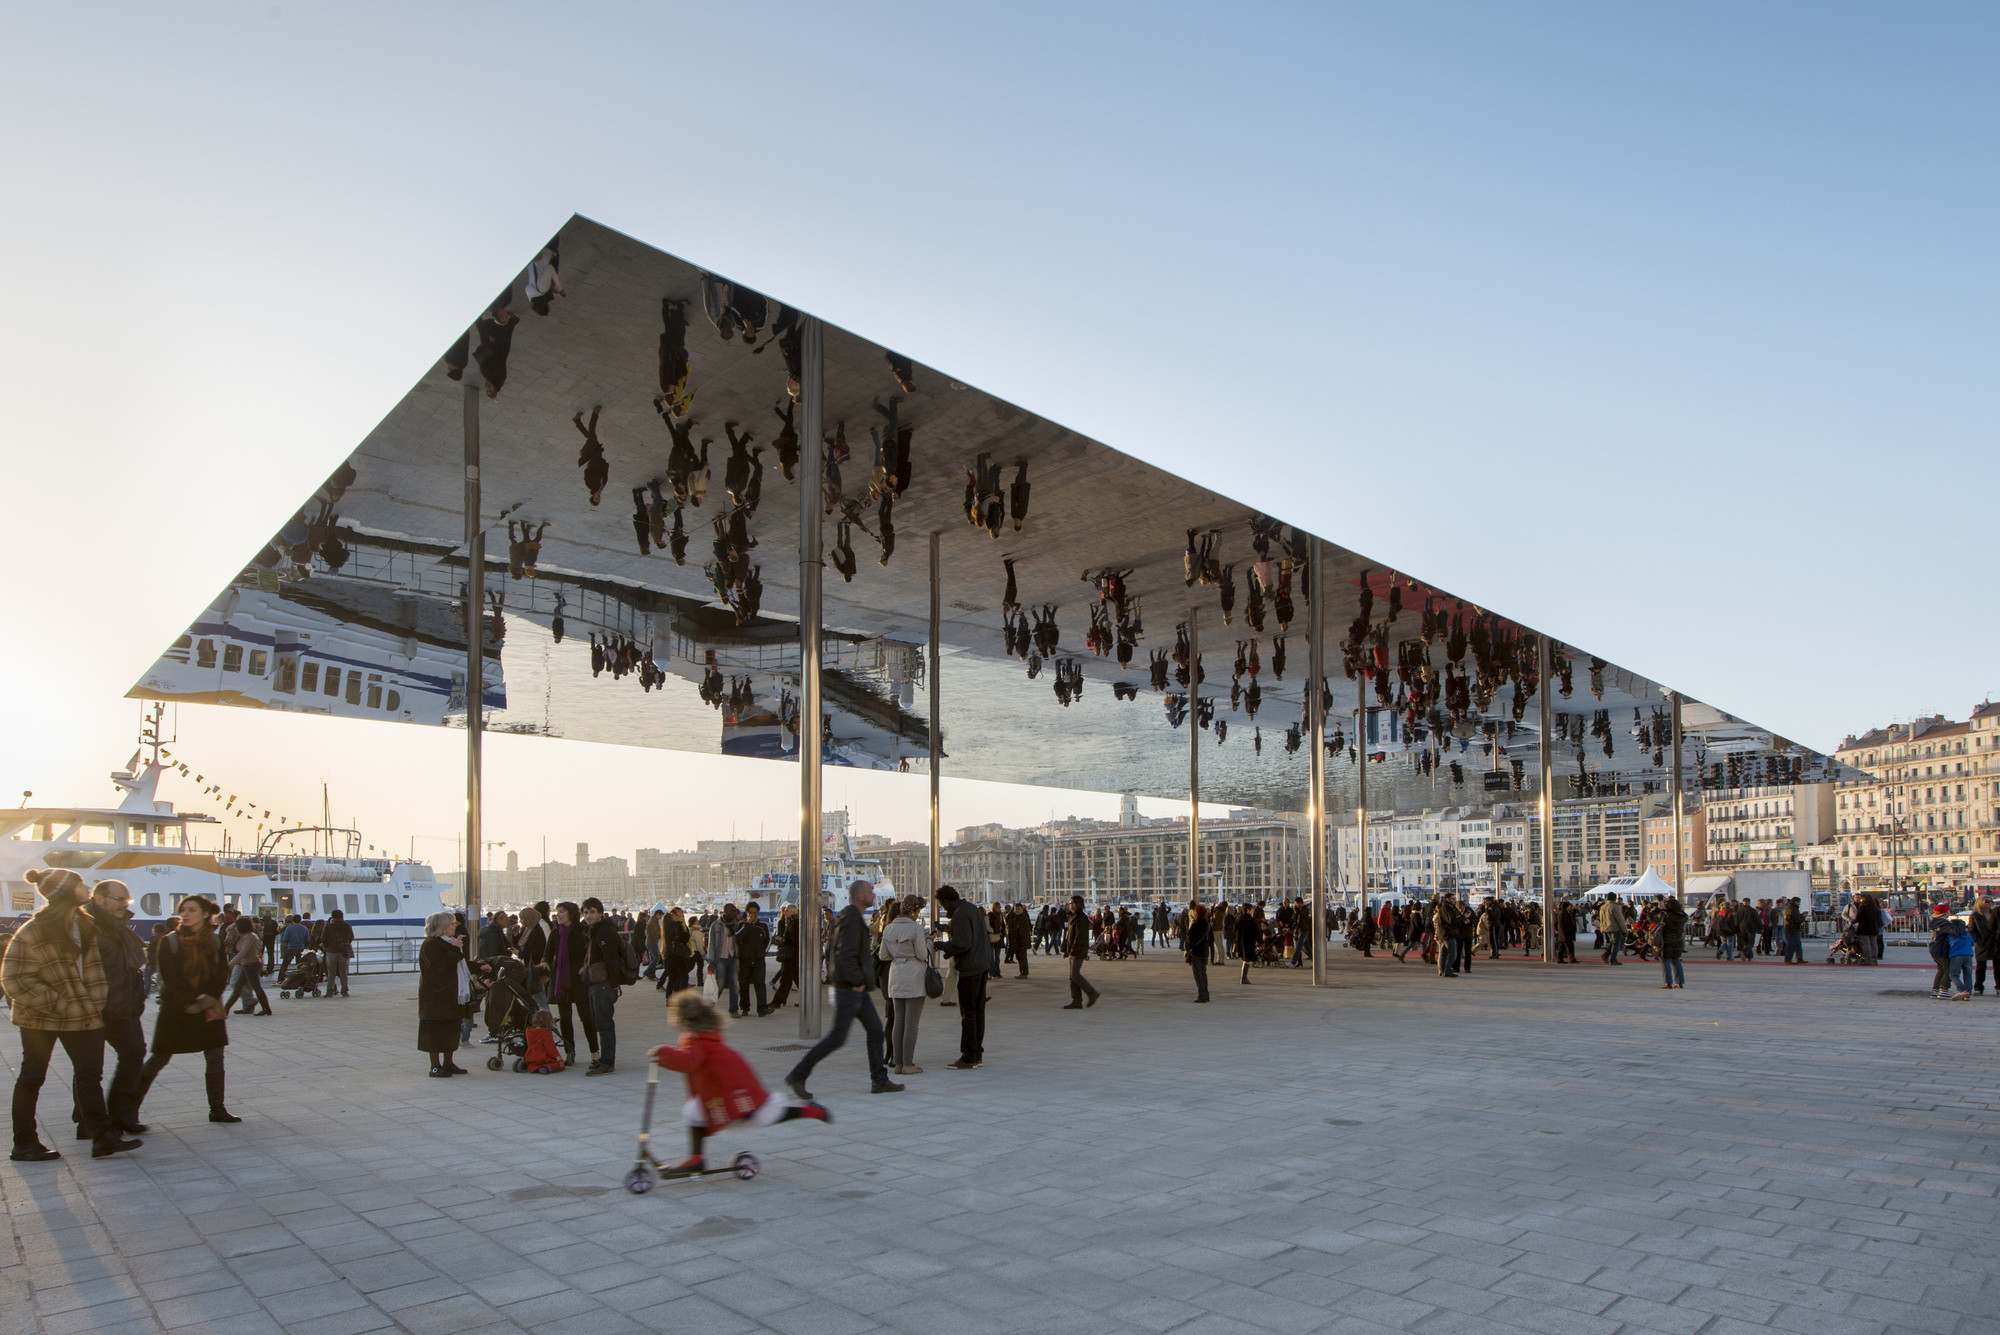 Vieux Port Pavilion / Foster + Partners, © Nigel Young / Foster + Partners